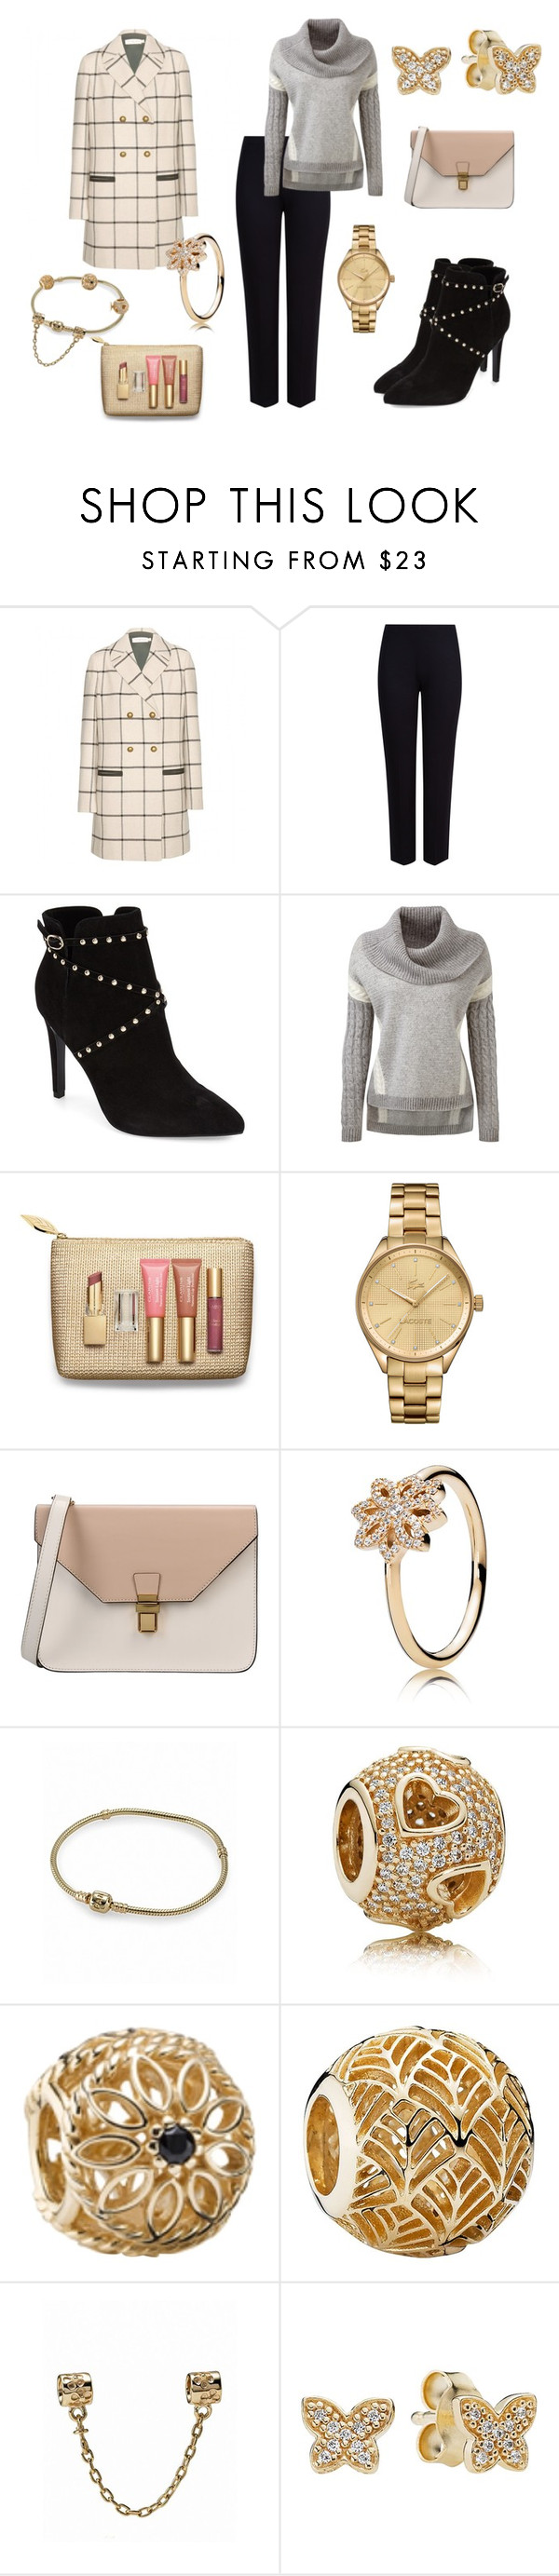 """""""Poise"""" by aniri310 on Polyvore featuring Tory Burch, M&S Collection, Topshop, Clarins, Lacoste, 8 and Pandora"""